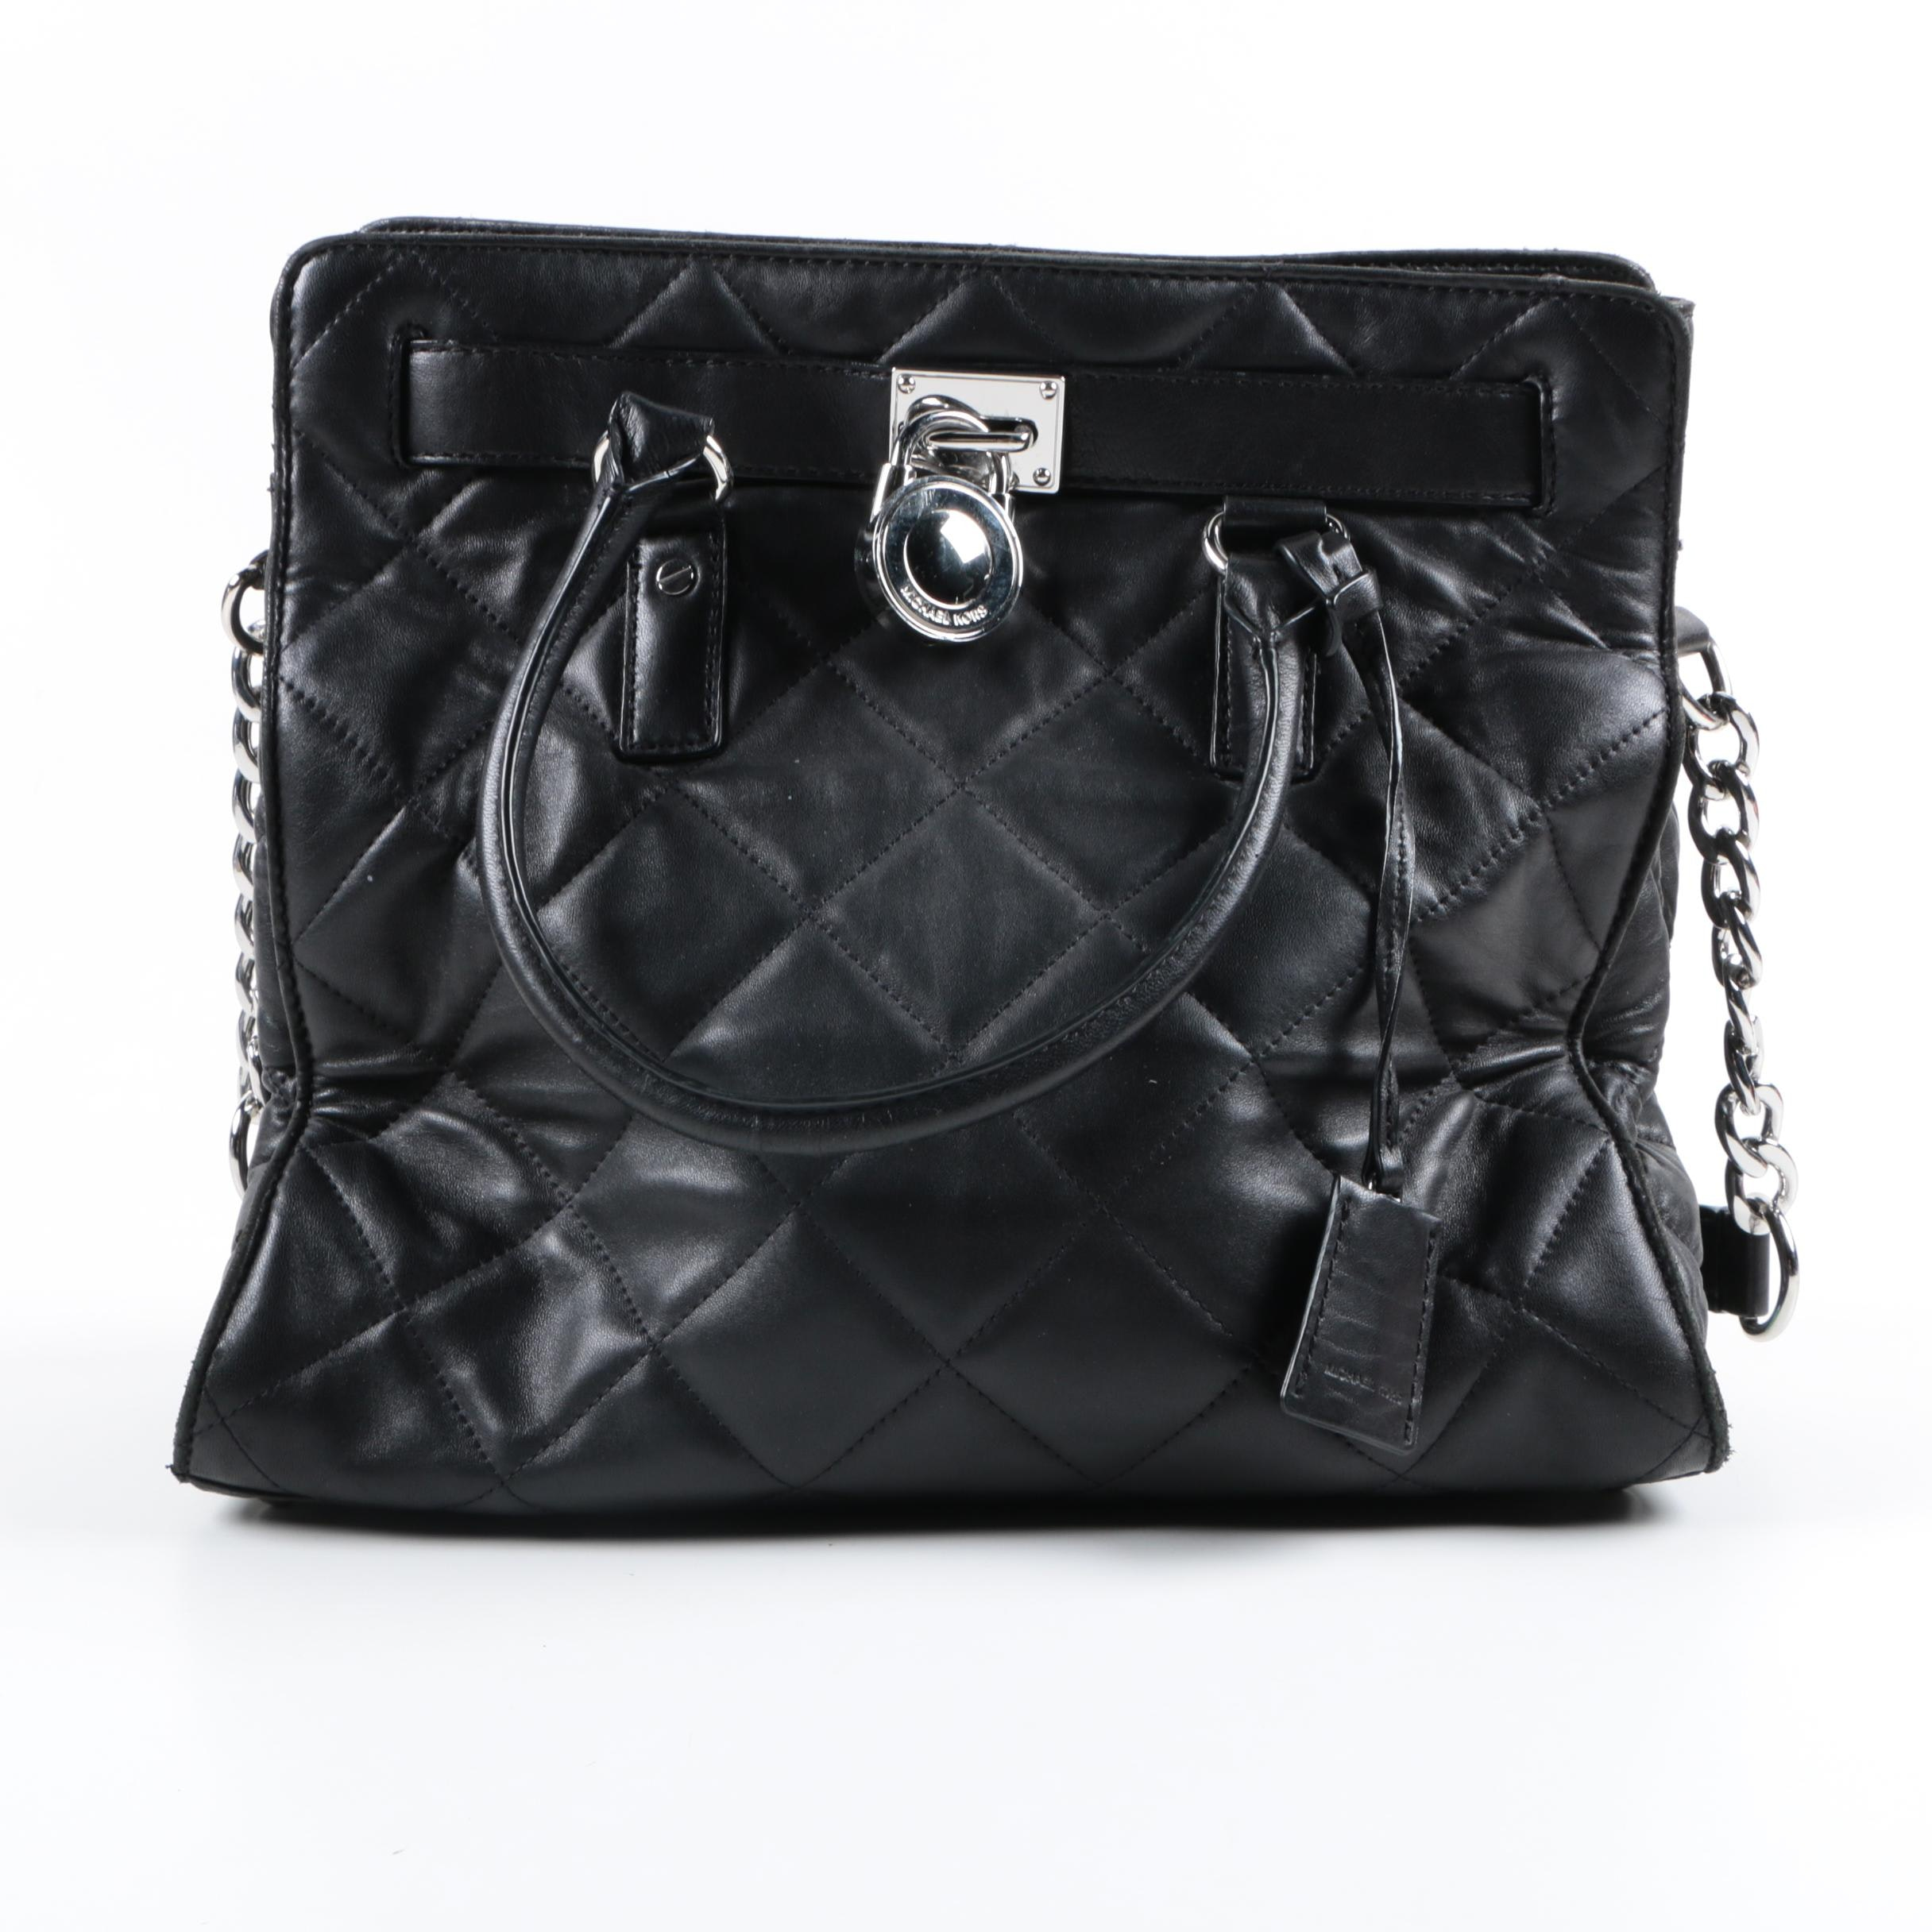 Michael by Michael Kors Black Quilted Leather Bag